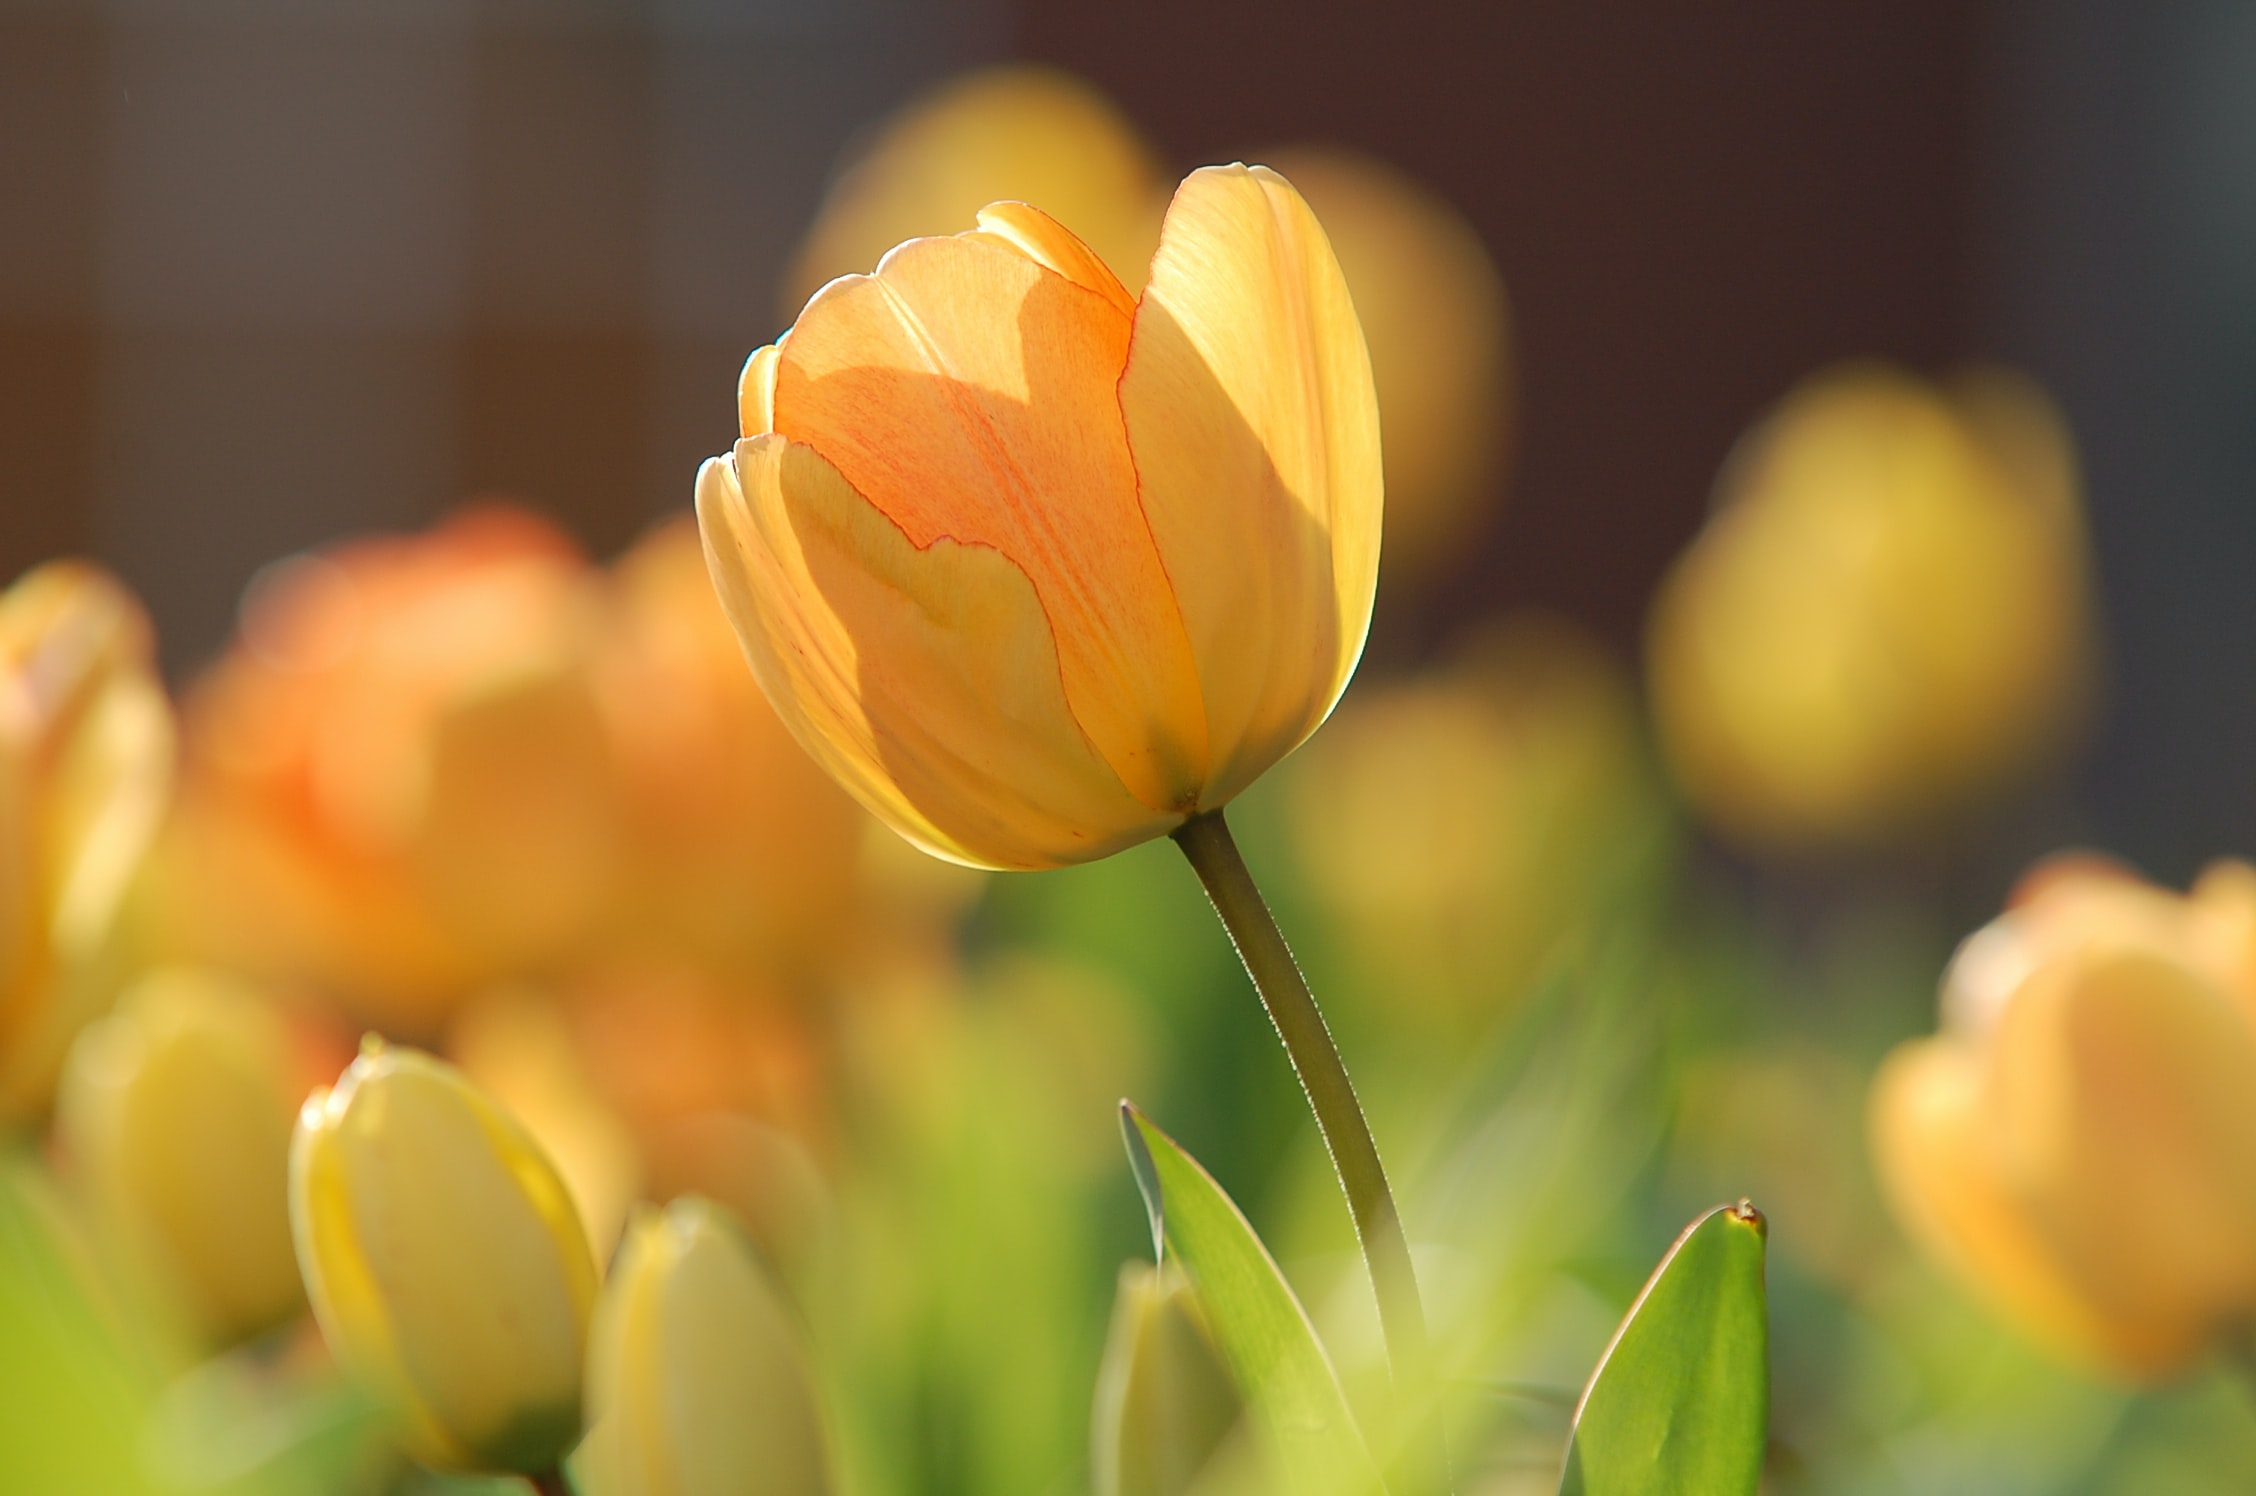 Yellow tulips leaning towards the sun and slowly opening their petals